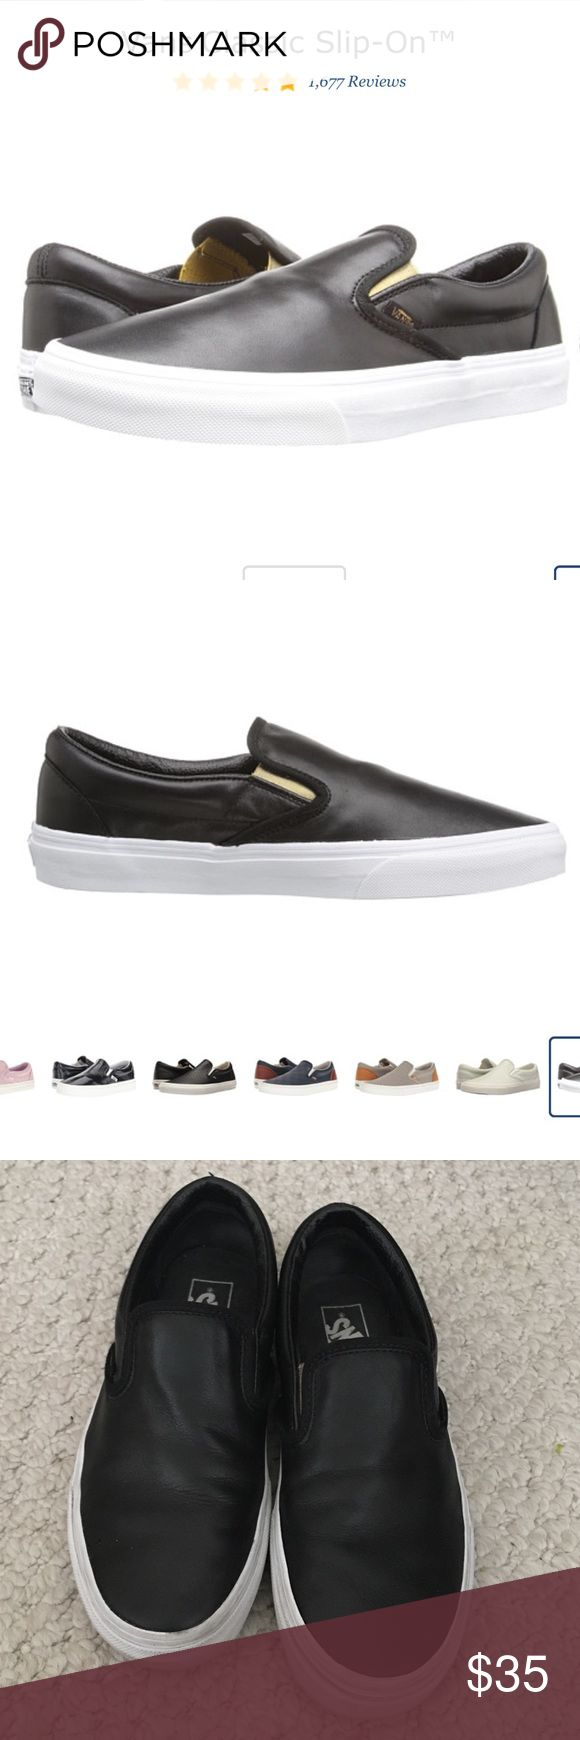 Vans classic slip on black leather Beautiful black slip ons with gold detail. Like new condition. Vans Shoes Sneakers